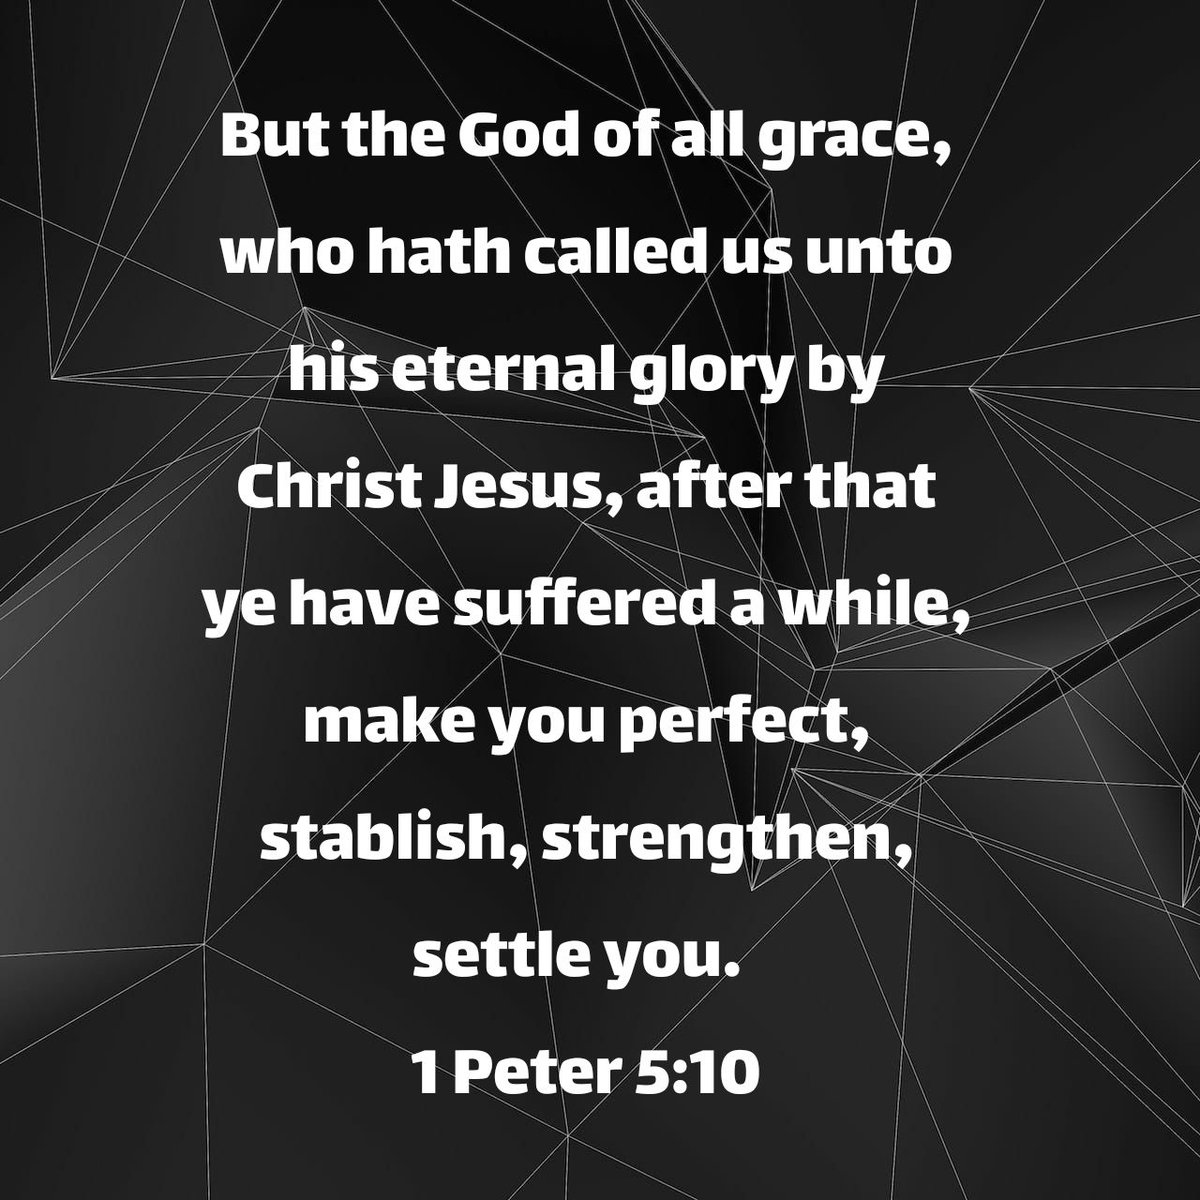 But the God of all grace, who hath called us unto his eternal glory by Christ Jesus, after that ye have suffered a while, make you perfect, stablish, strengthen, settle you. 1 Peter 5:10 KJV